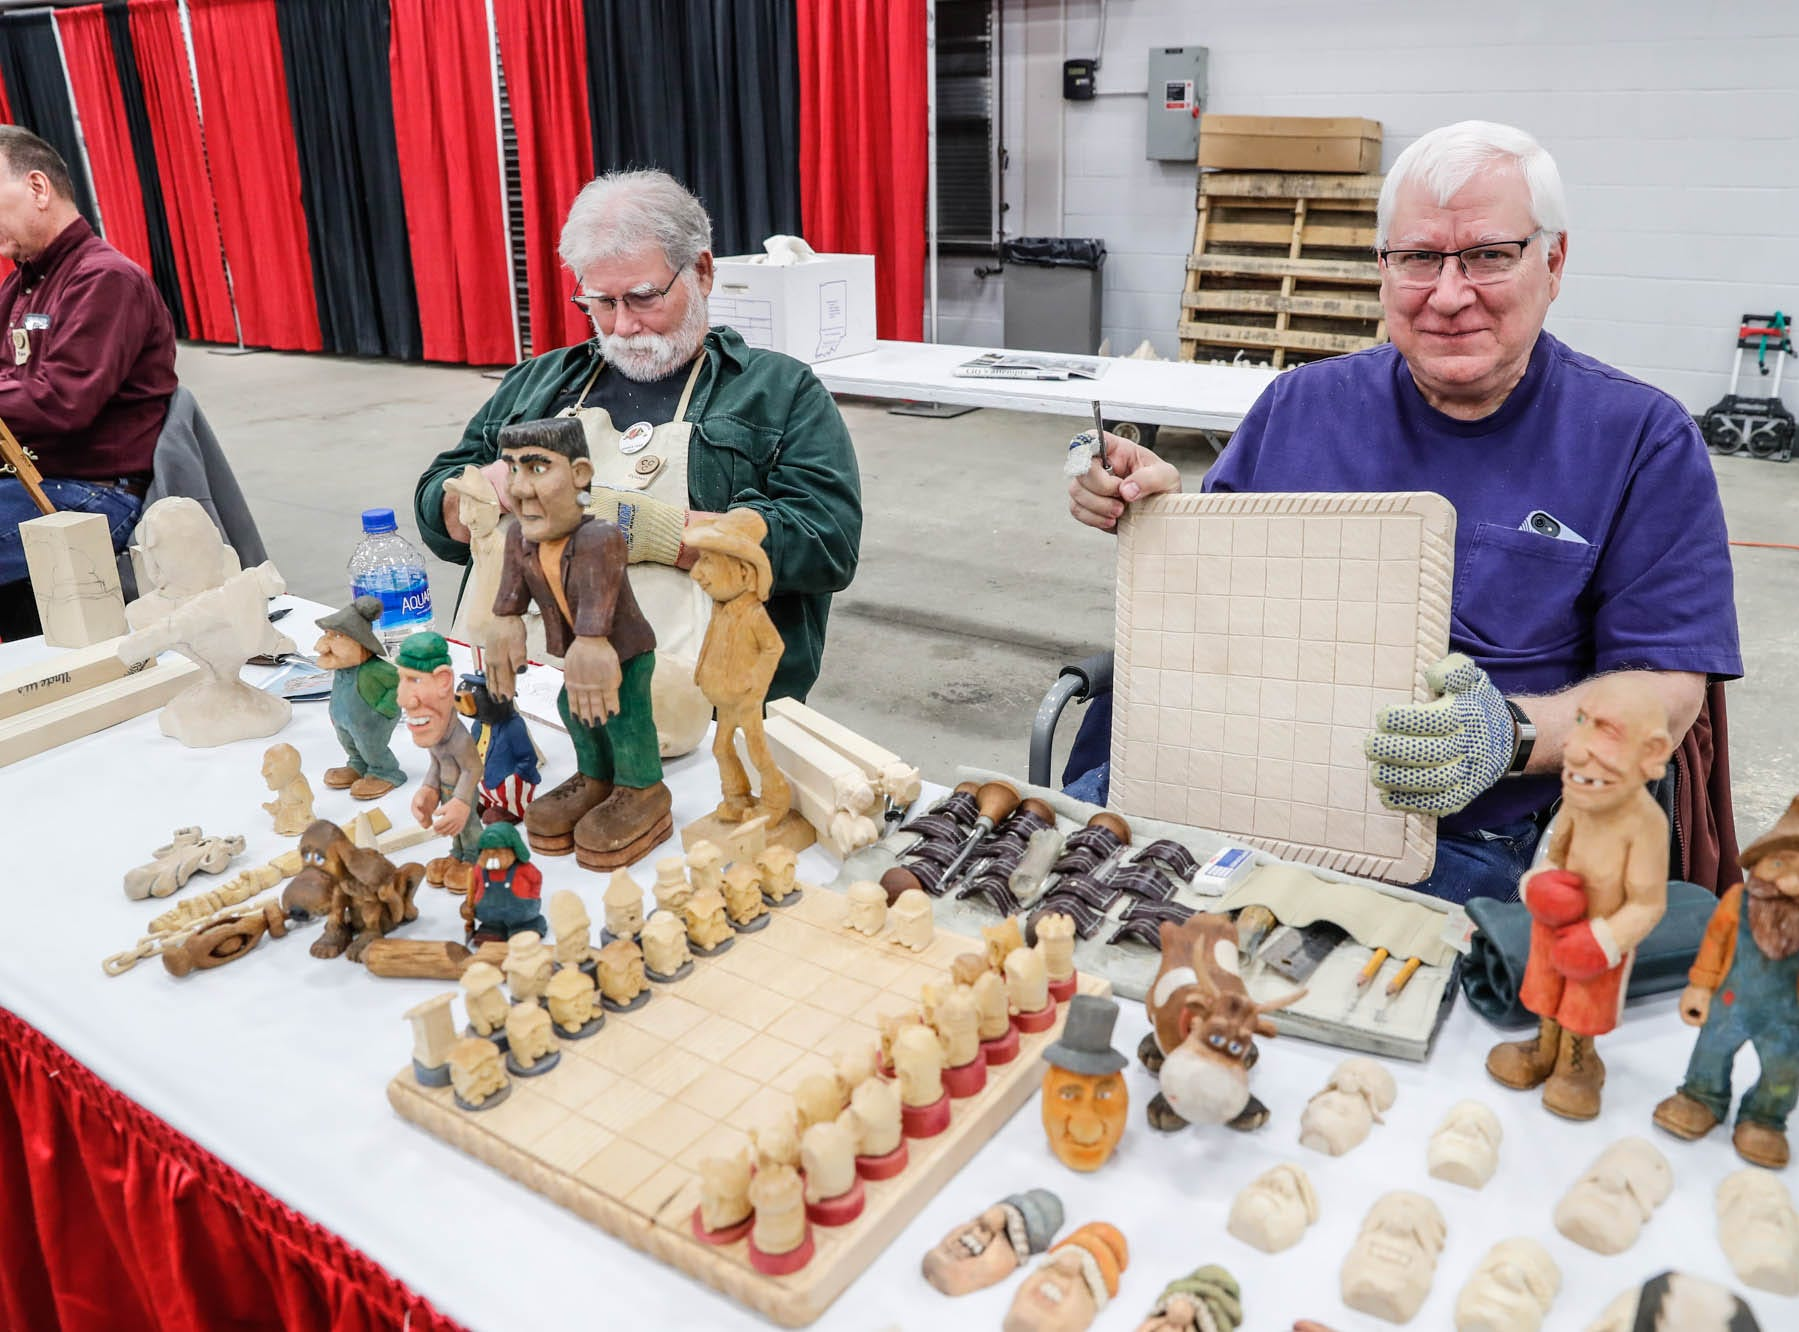 Richard Osborne, left, and Greg May, right, work on projects during a Wood Working Show at the Indiana State Fairgrounds in Indianapolis on Sunday, Feb. 3, 2019.